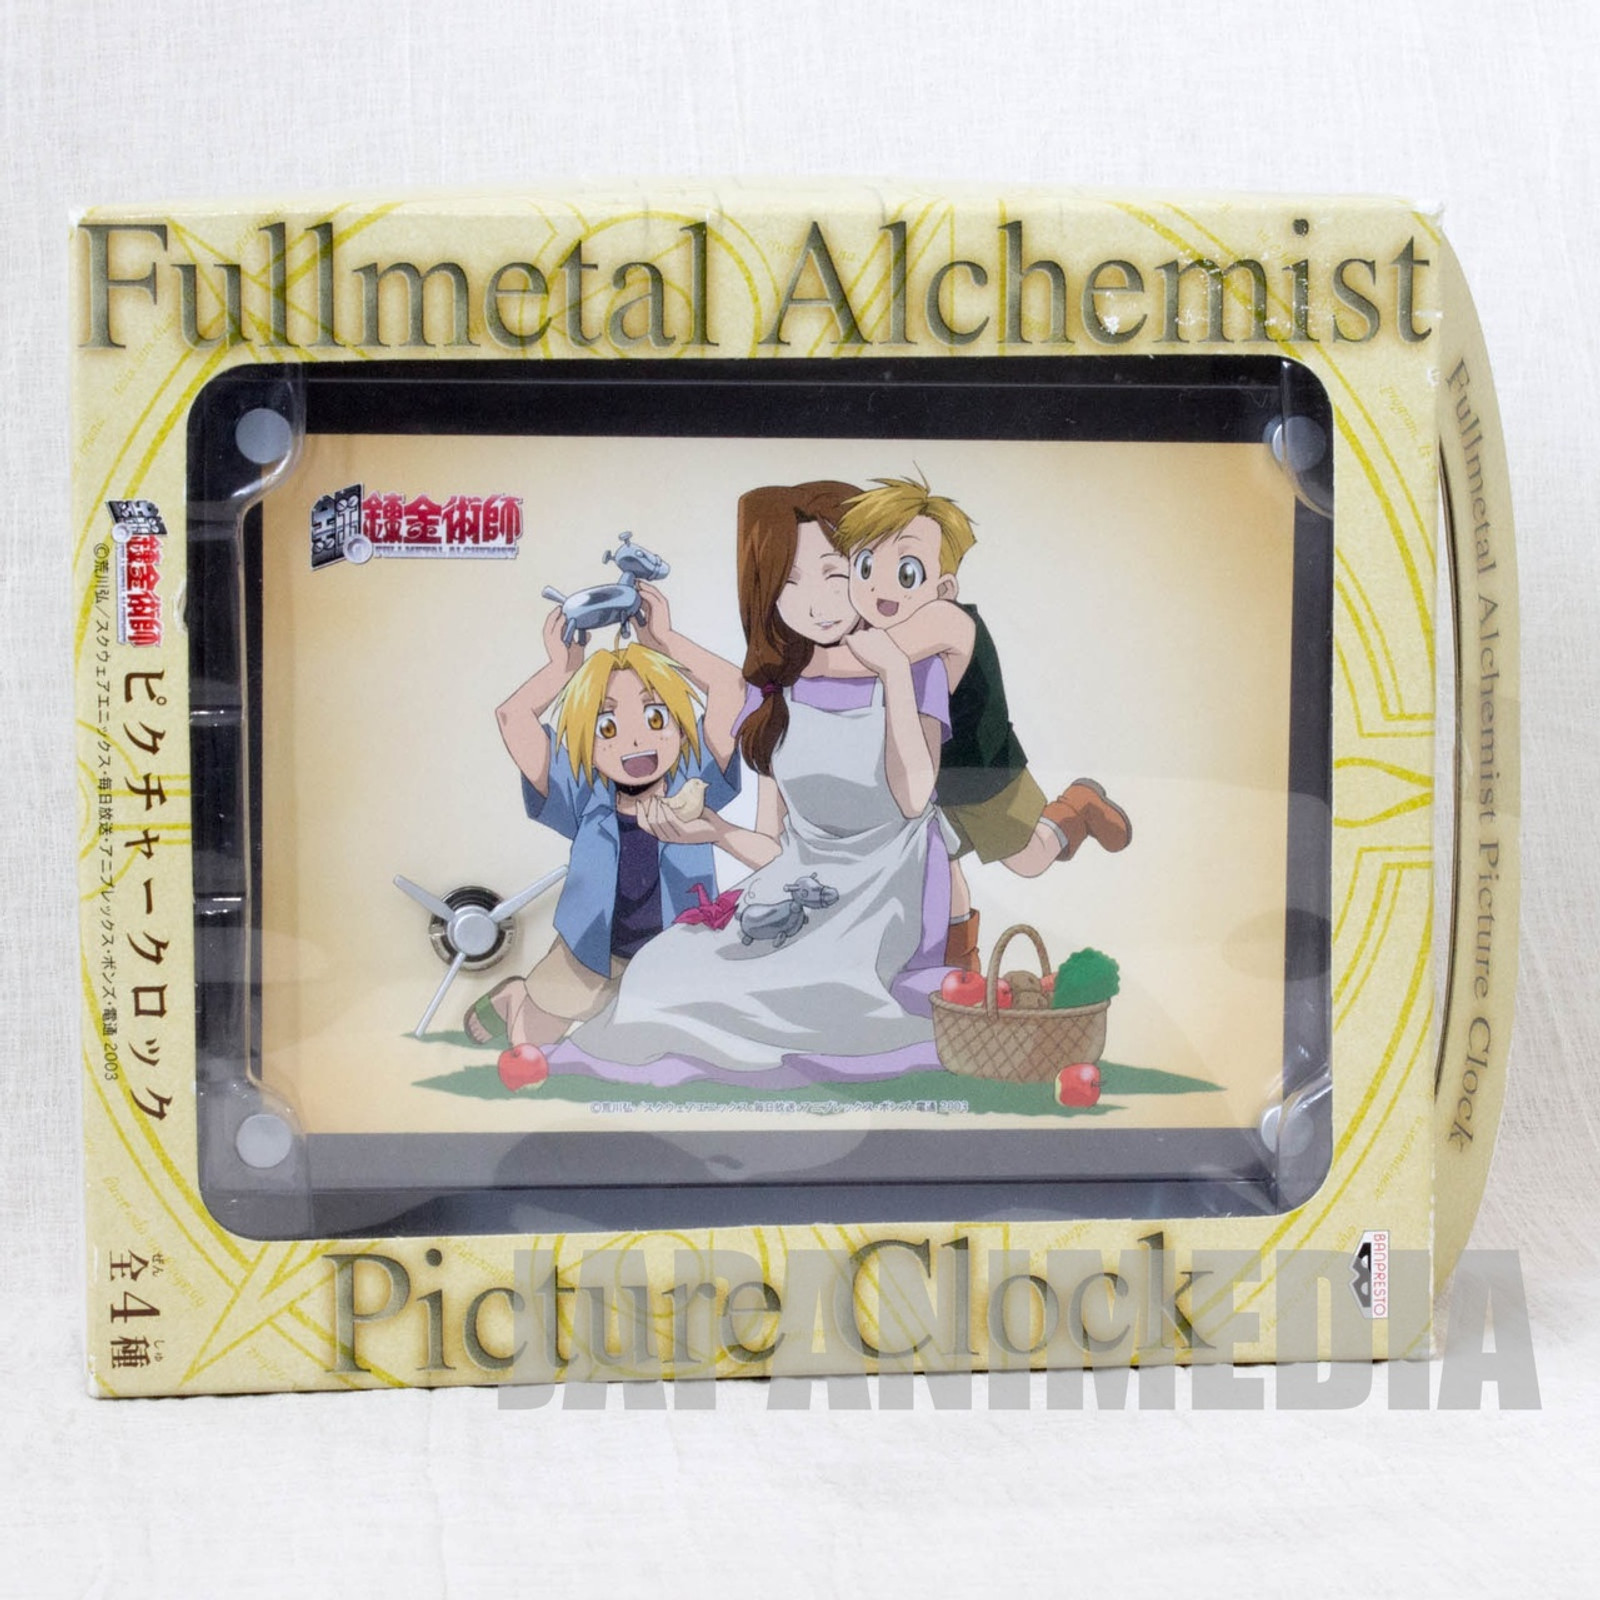 Fullmetal Alchemist Childhood Picture Desktop Clock JAPAN ANIME MANGA